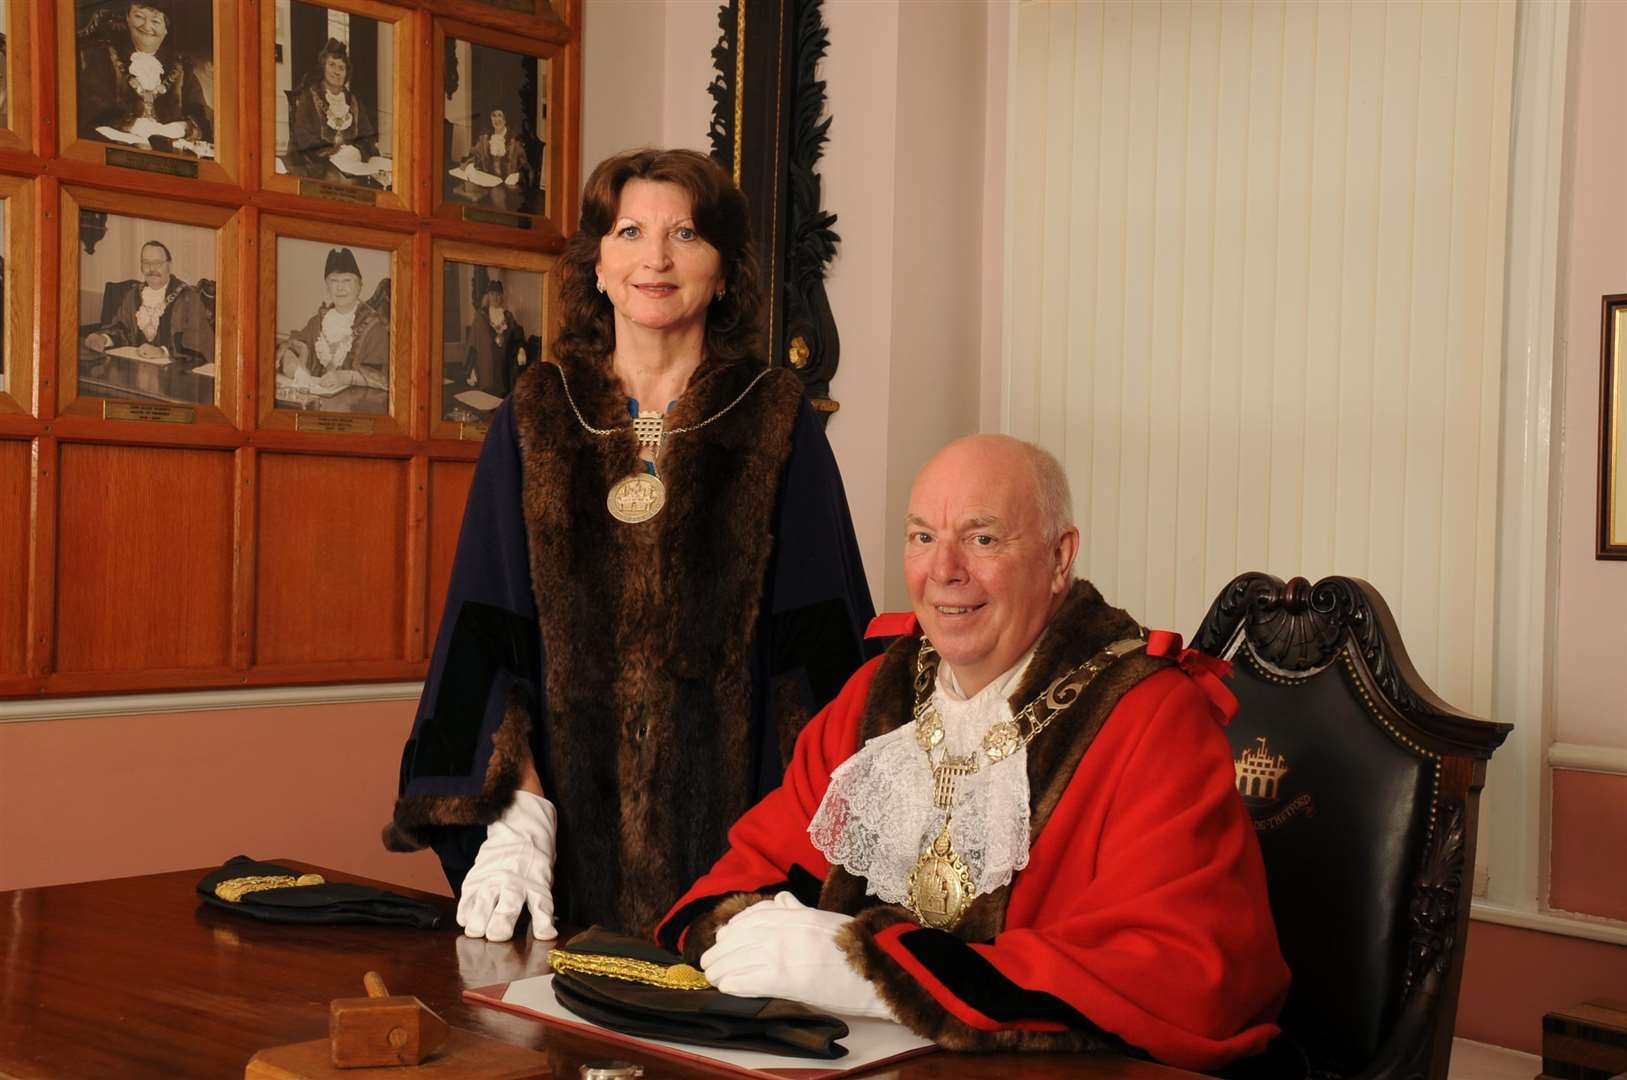 Mayor Roy Brame and Mayoress Karen Brame (2200311)